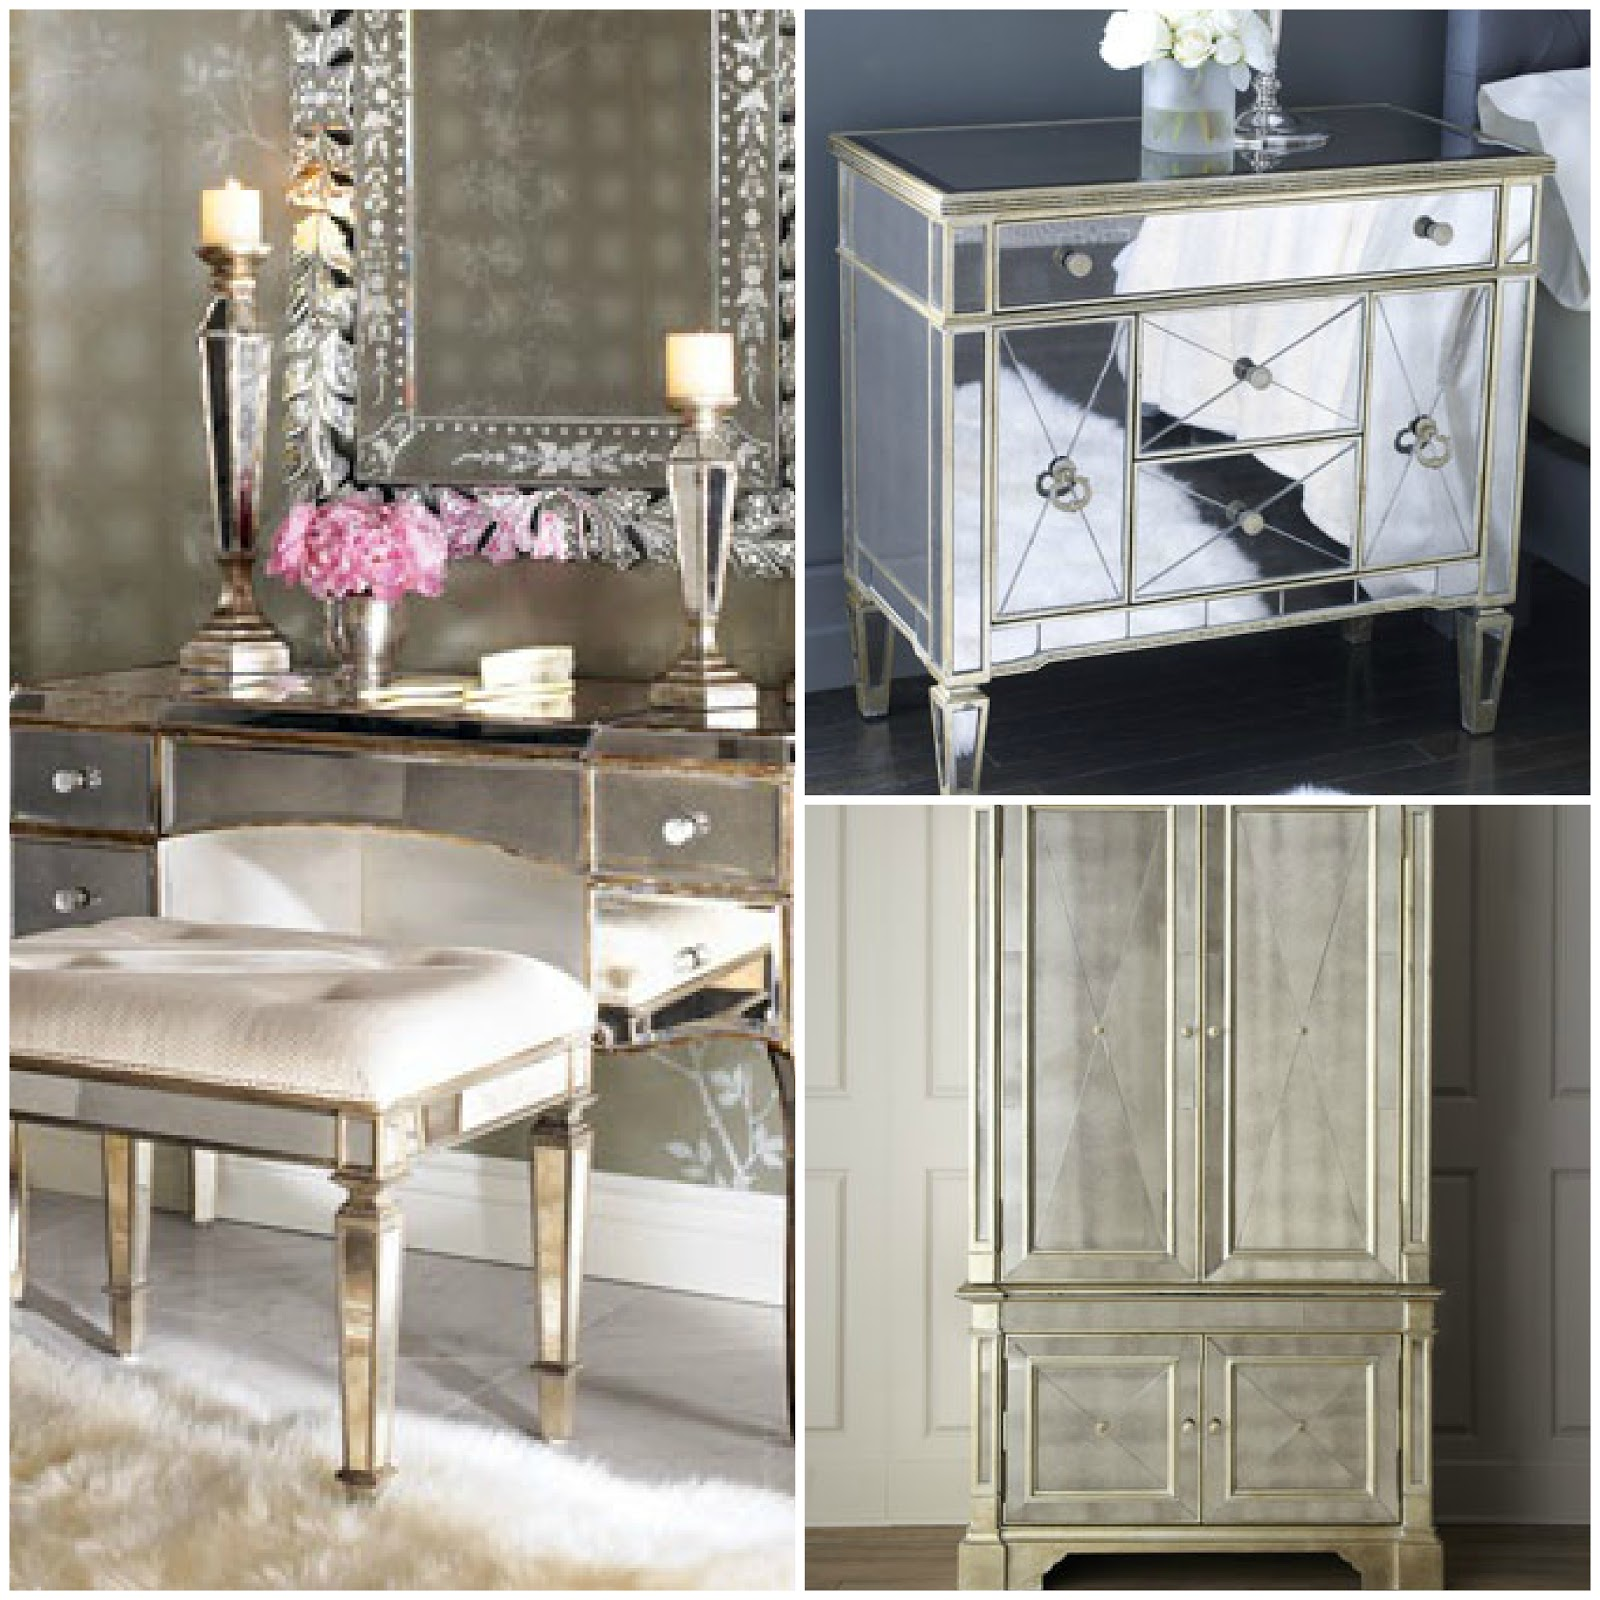 Dazzling hayworth vanity mirrored vanity and ikea vanity also ikea rug hayworth rug ideas